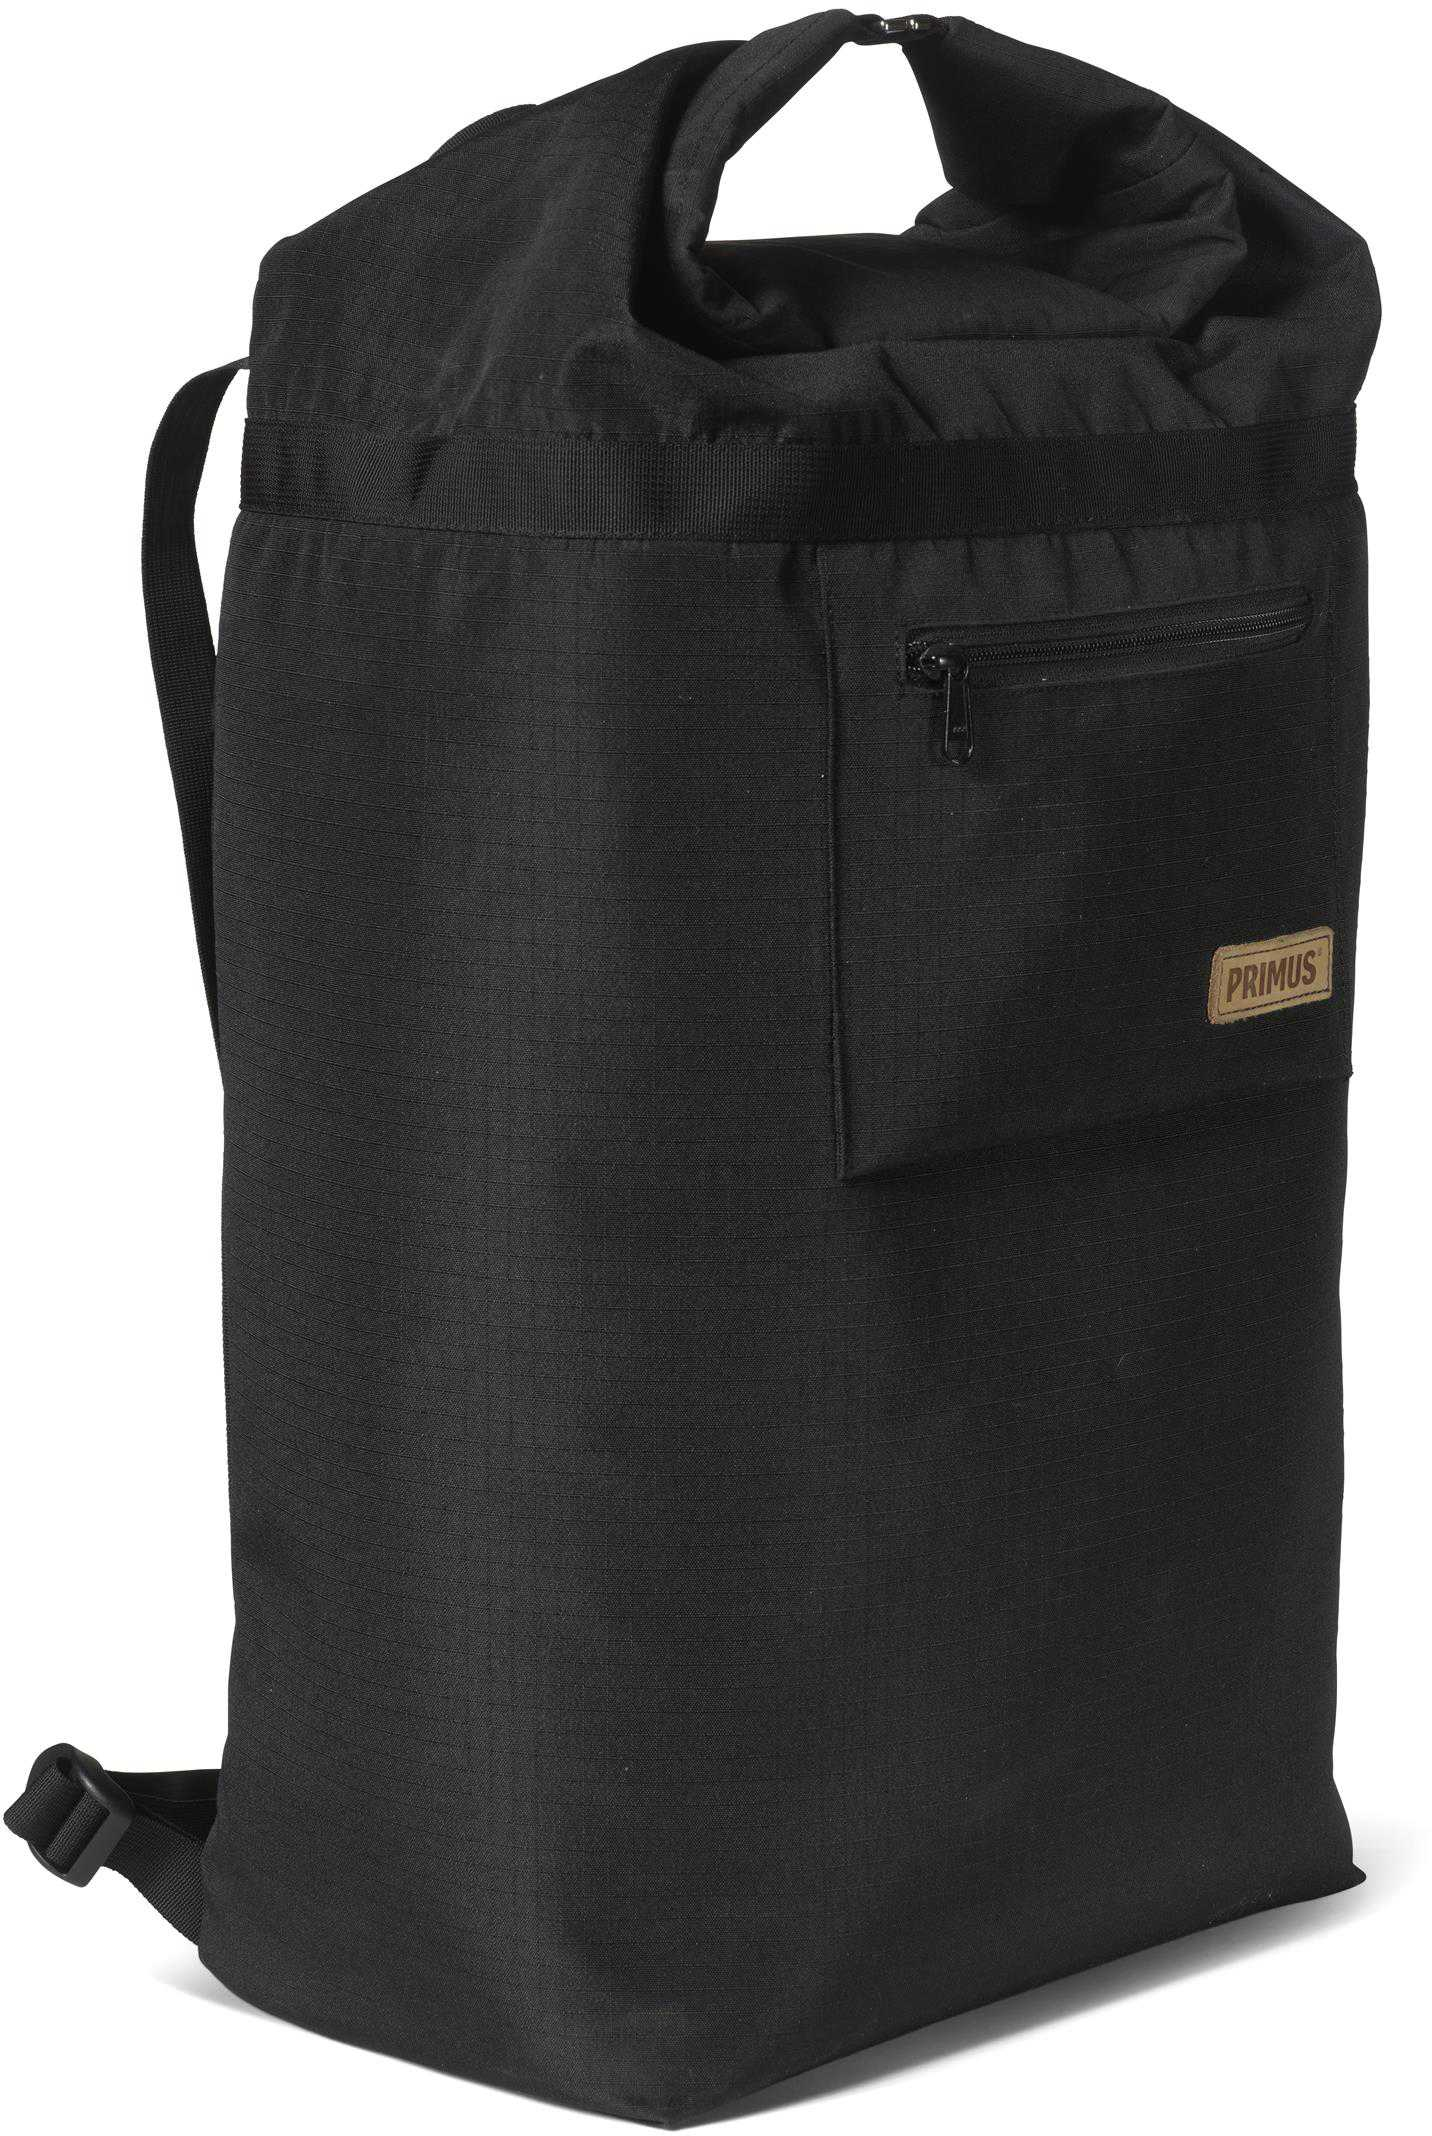 Primus Cooler Backpack | Travel bags